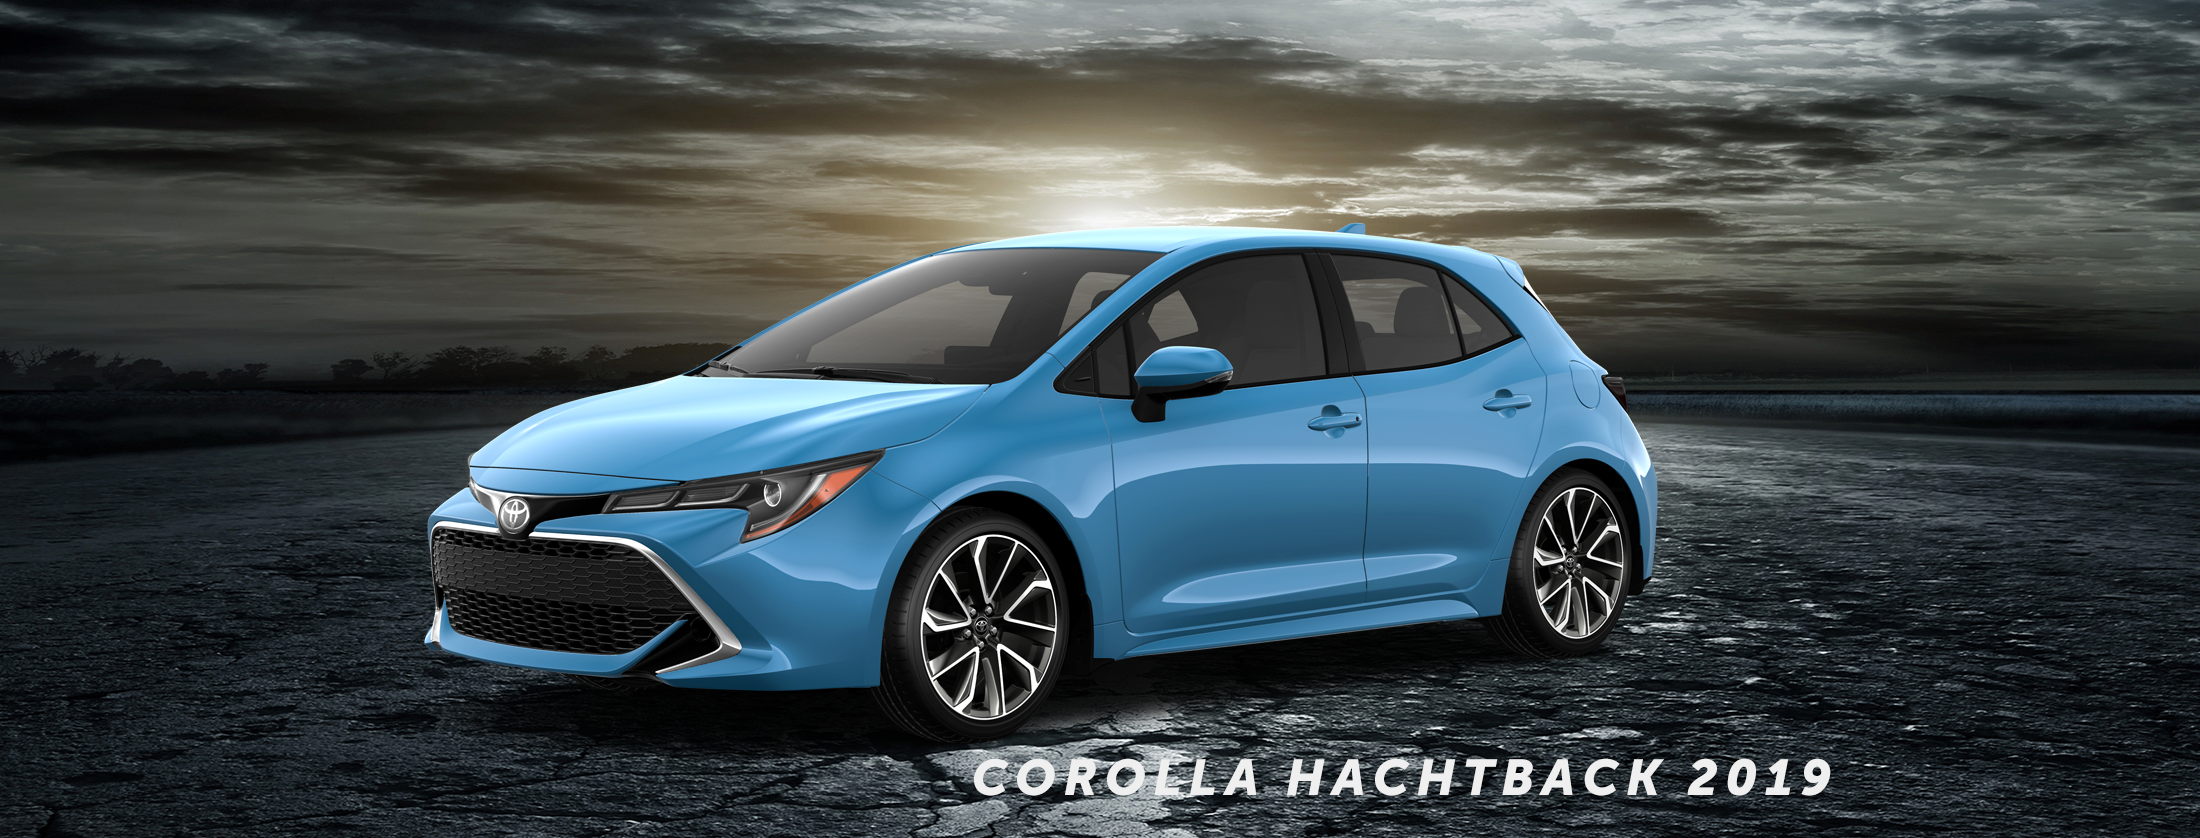 Carrefour 40 640 >> Corolla 2019 Hatchback | Carrefour 40-640 Toyota